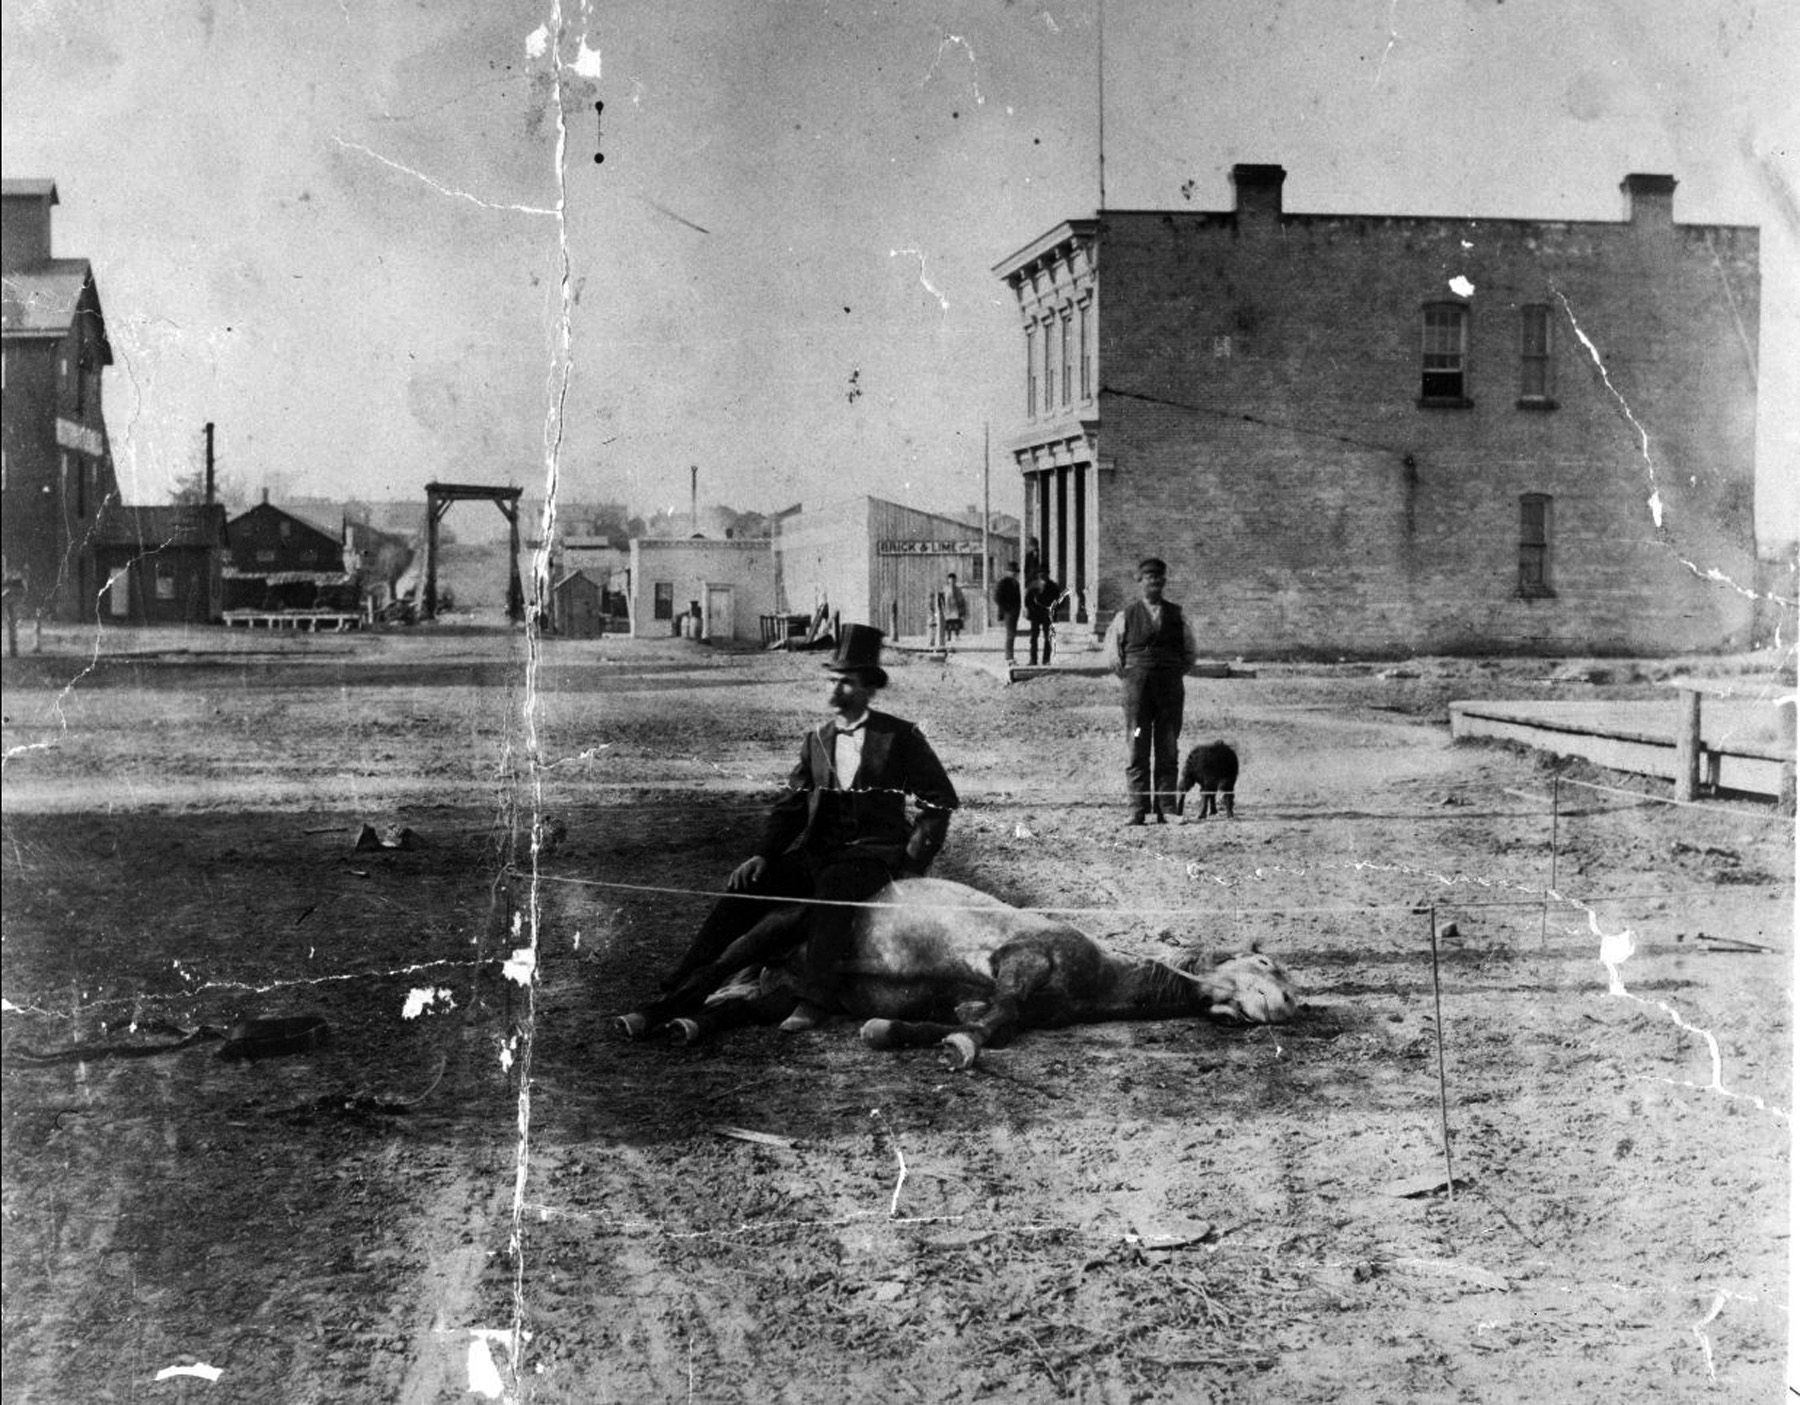 File:Man sitting on a dead horse (1876 - 1884).jpg